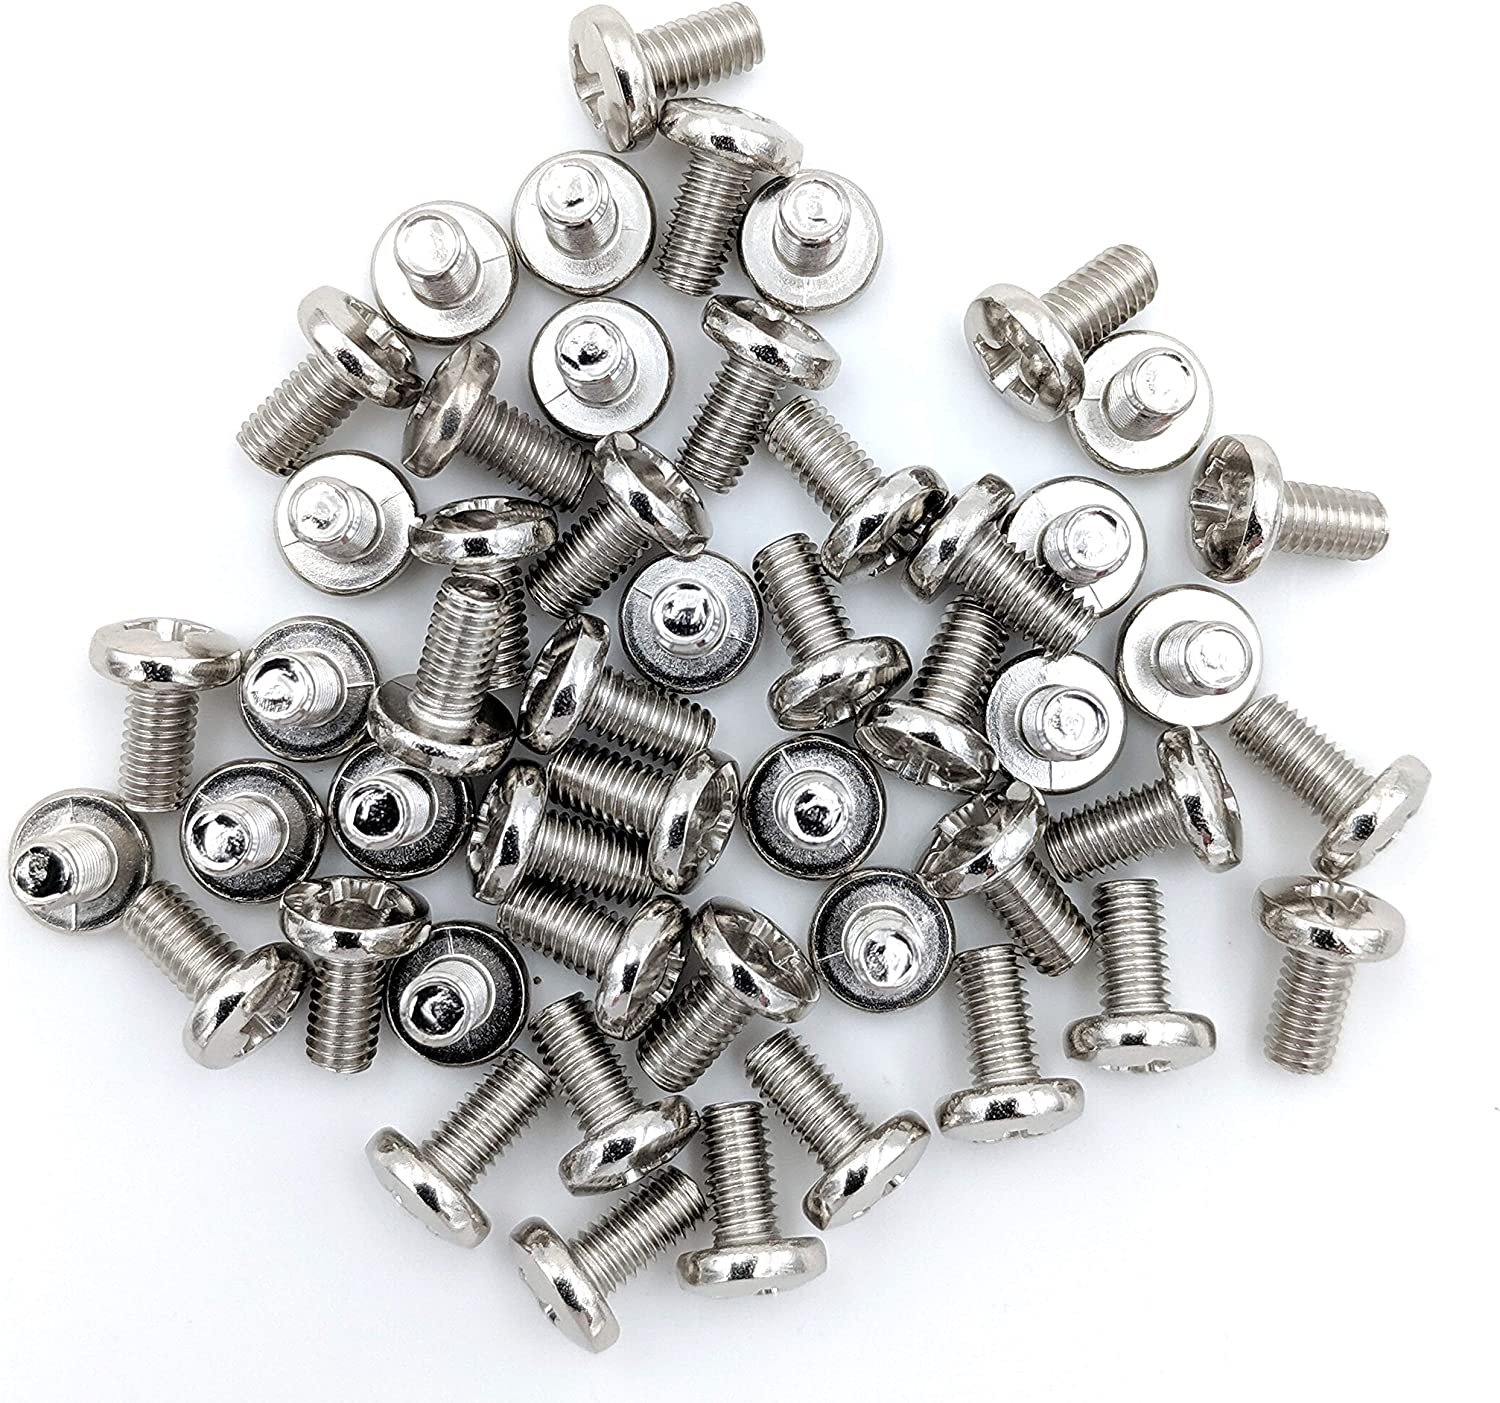 Screws for CB and 10 Meter Radios Cover 50 50-Pack Nickel Plated Chrome Cabinet